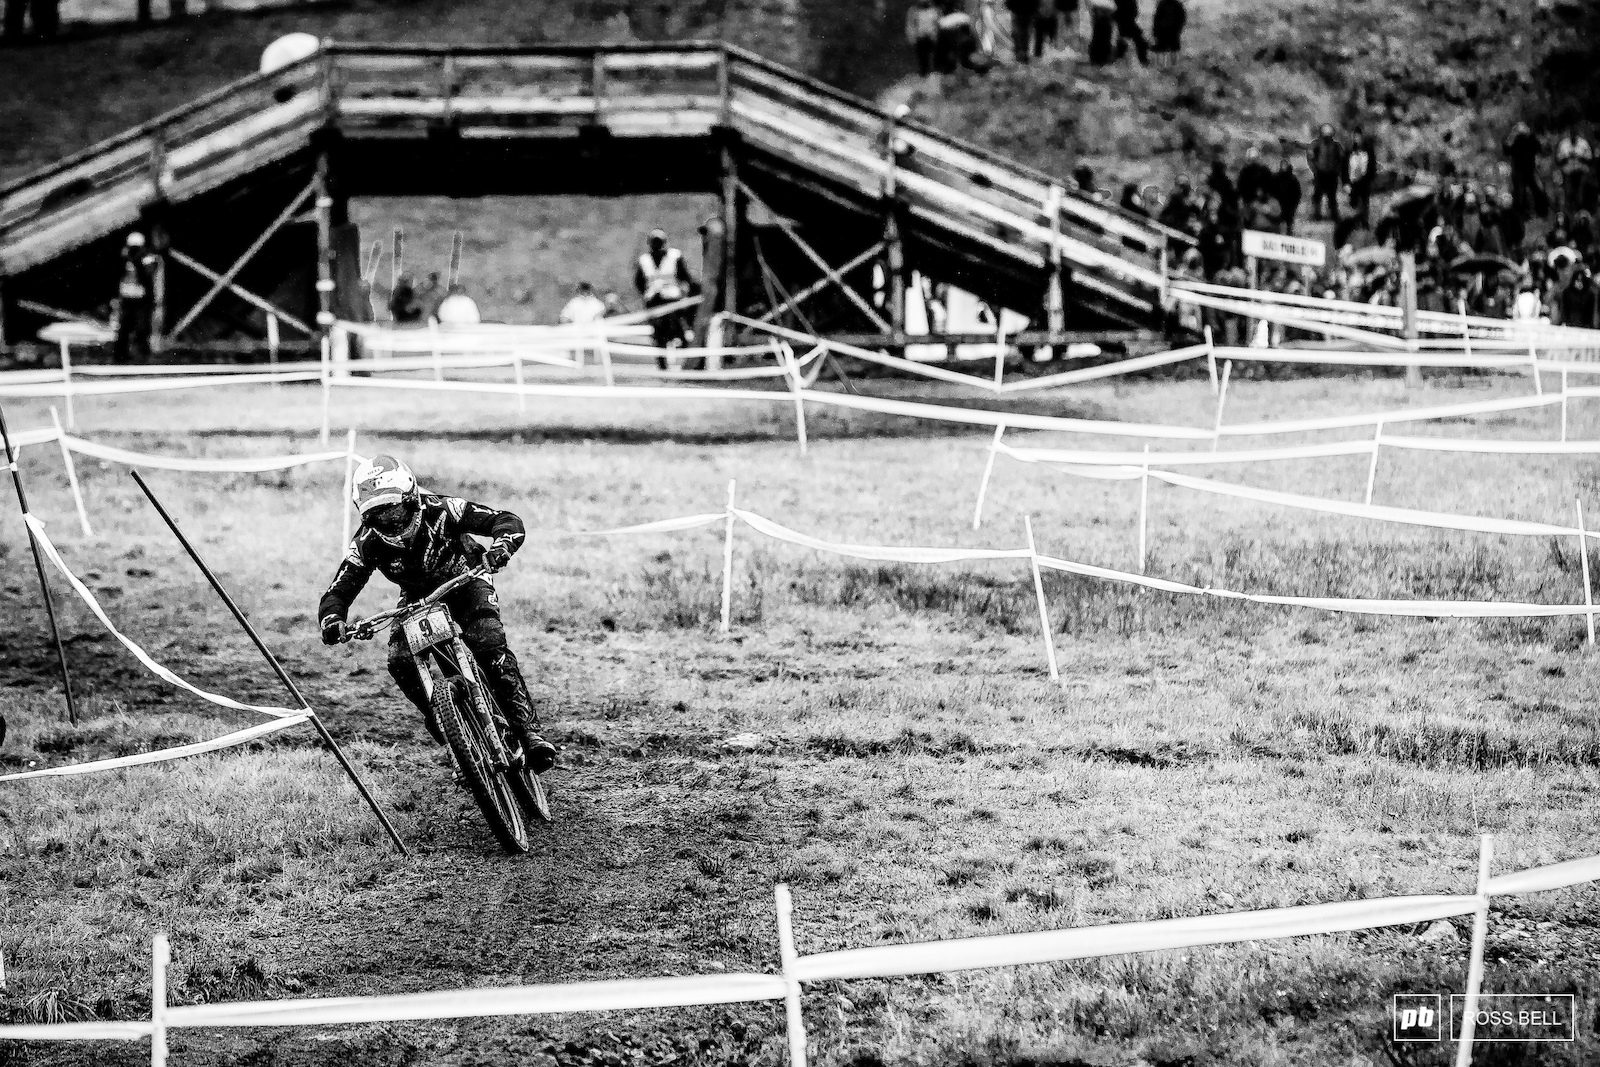 Aaron Gwin pushing to the line after tasting the dirt further up track.